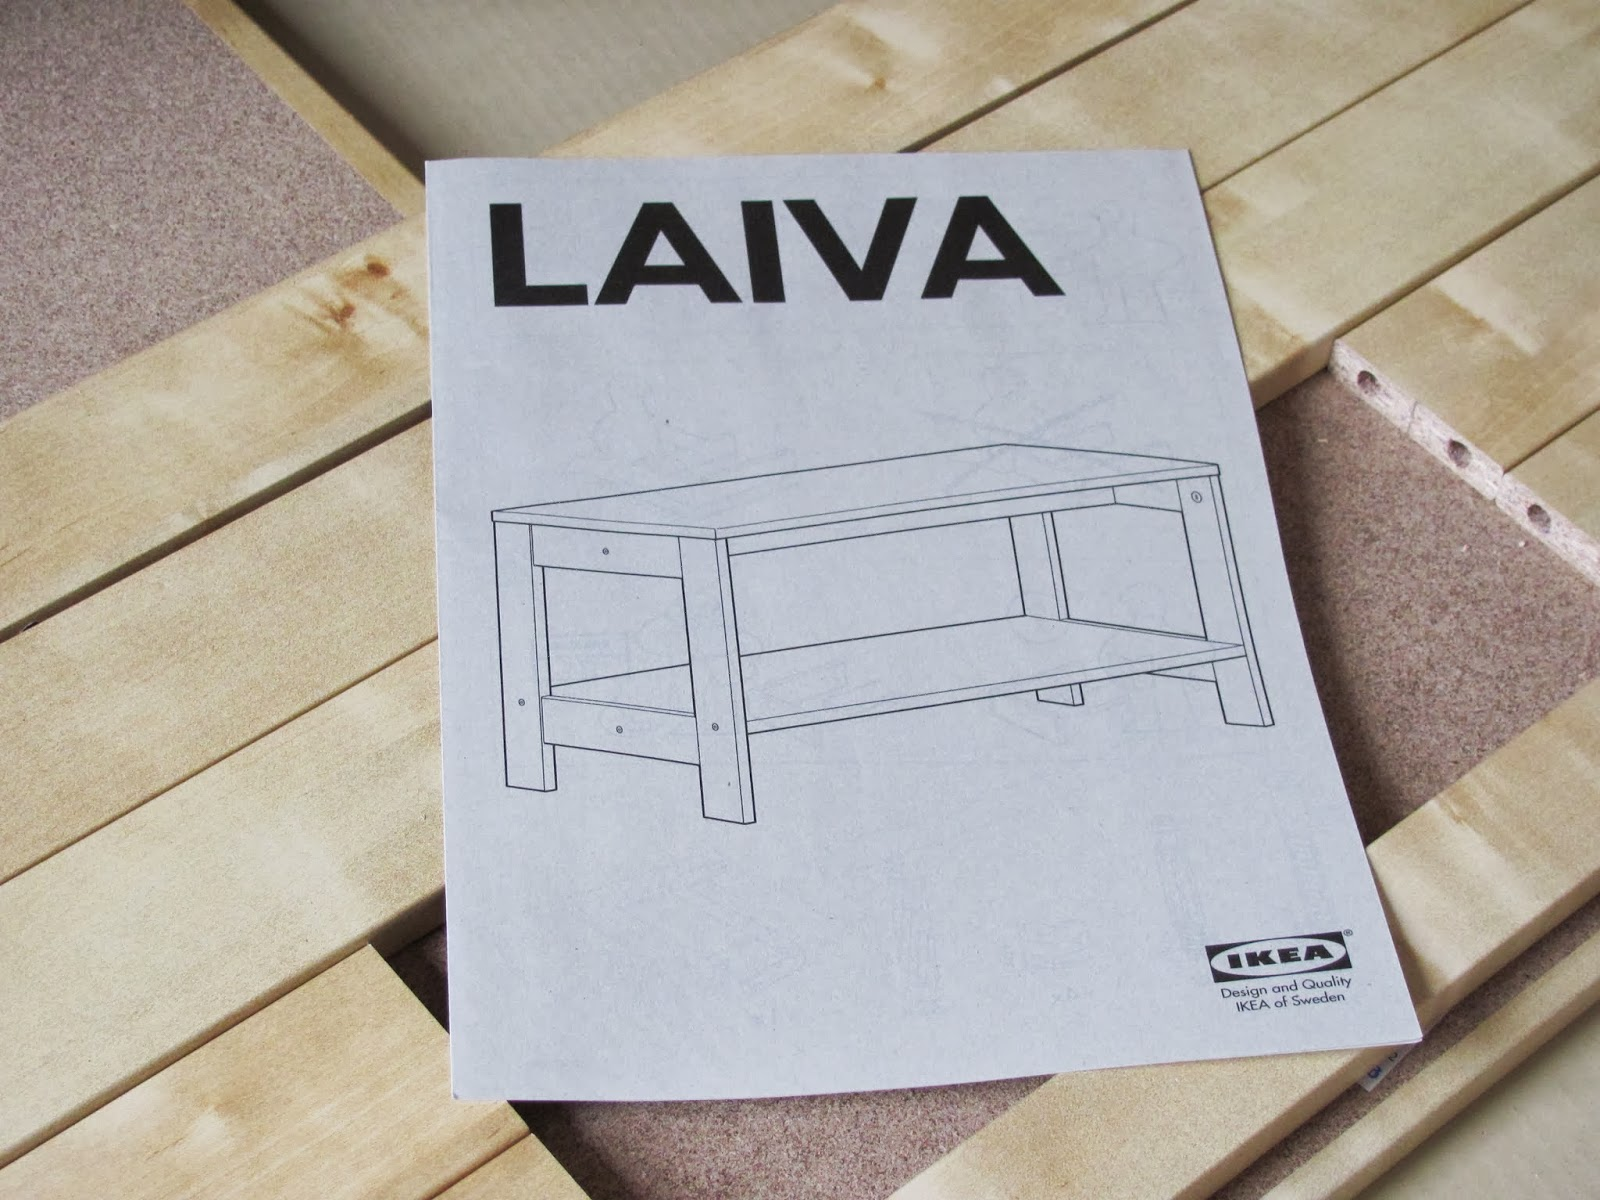 Instructions for LAIVA TV stand from IKEA Dublin, Ireland